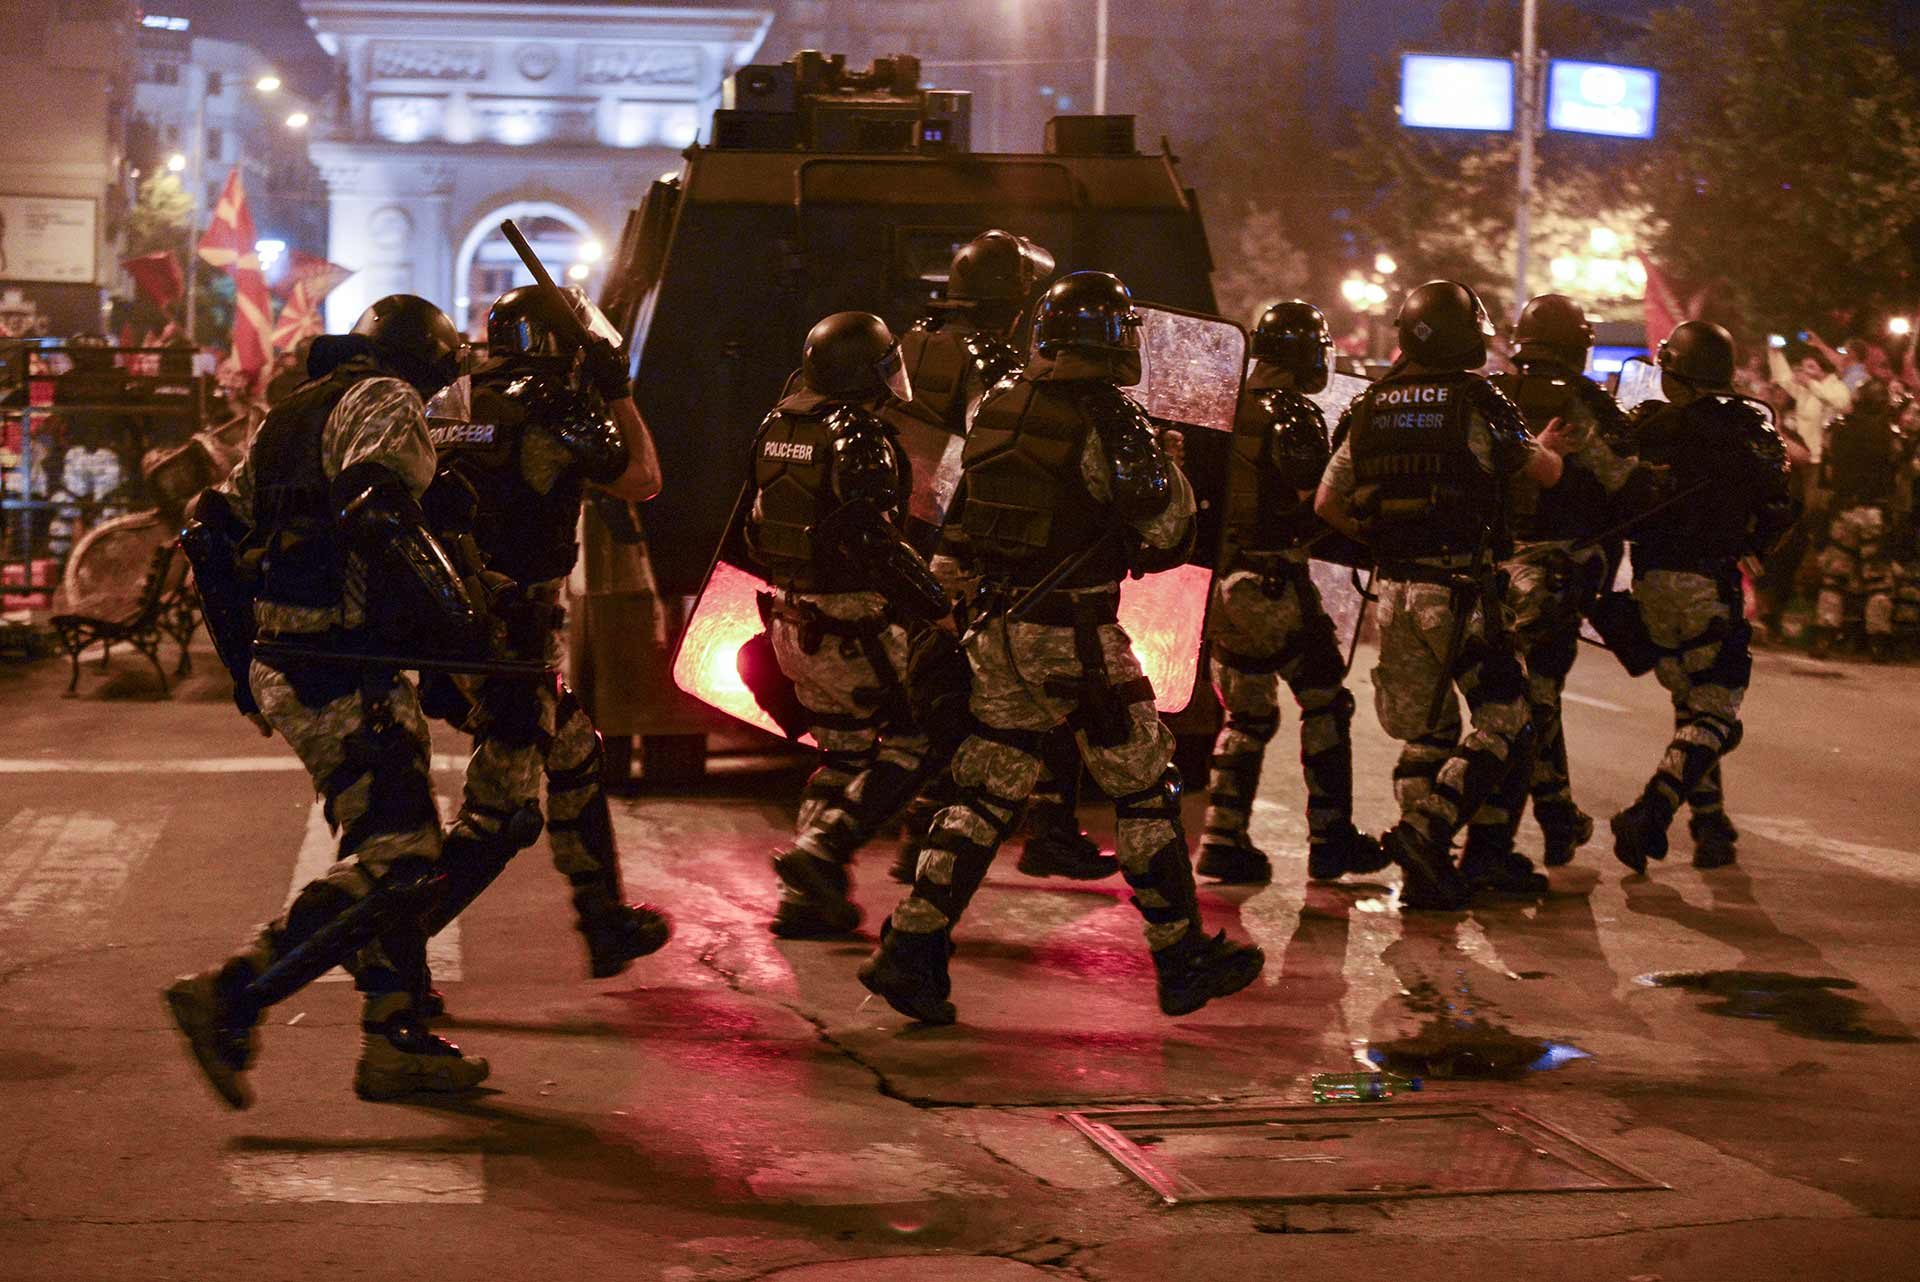 Riot police face off against protesters in the centre of Skopje, capital of the Republic of Macedonia. Credit: Robert Atasanovski